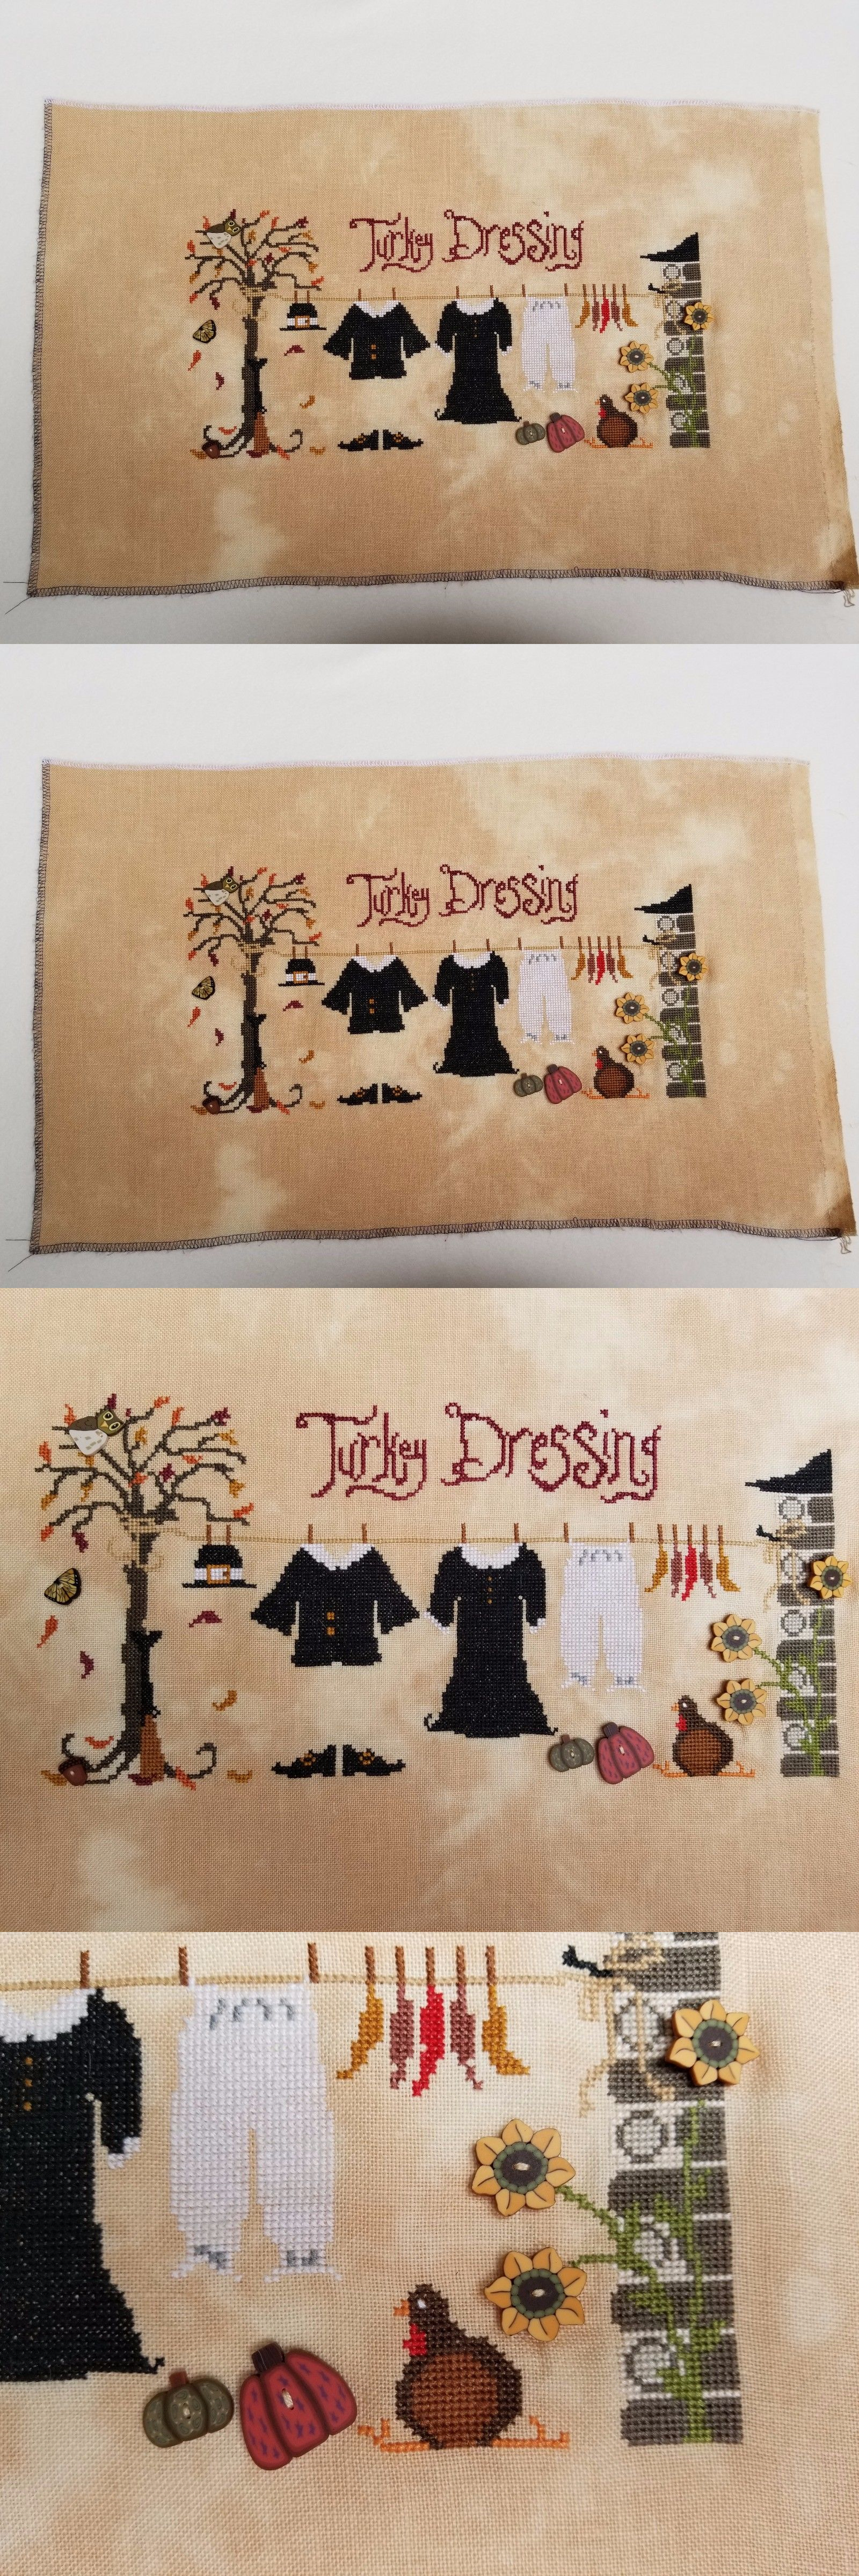 Finished Cross Stitch Pieces 71189: Turkey Dressing - A Unique Thanksgiving Finished Cross Stitch -> BUY IT NOW ONLY: $75 on eBay!